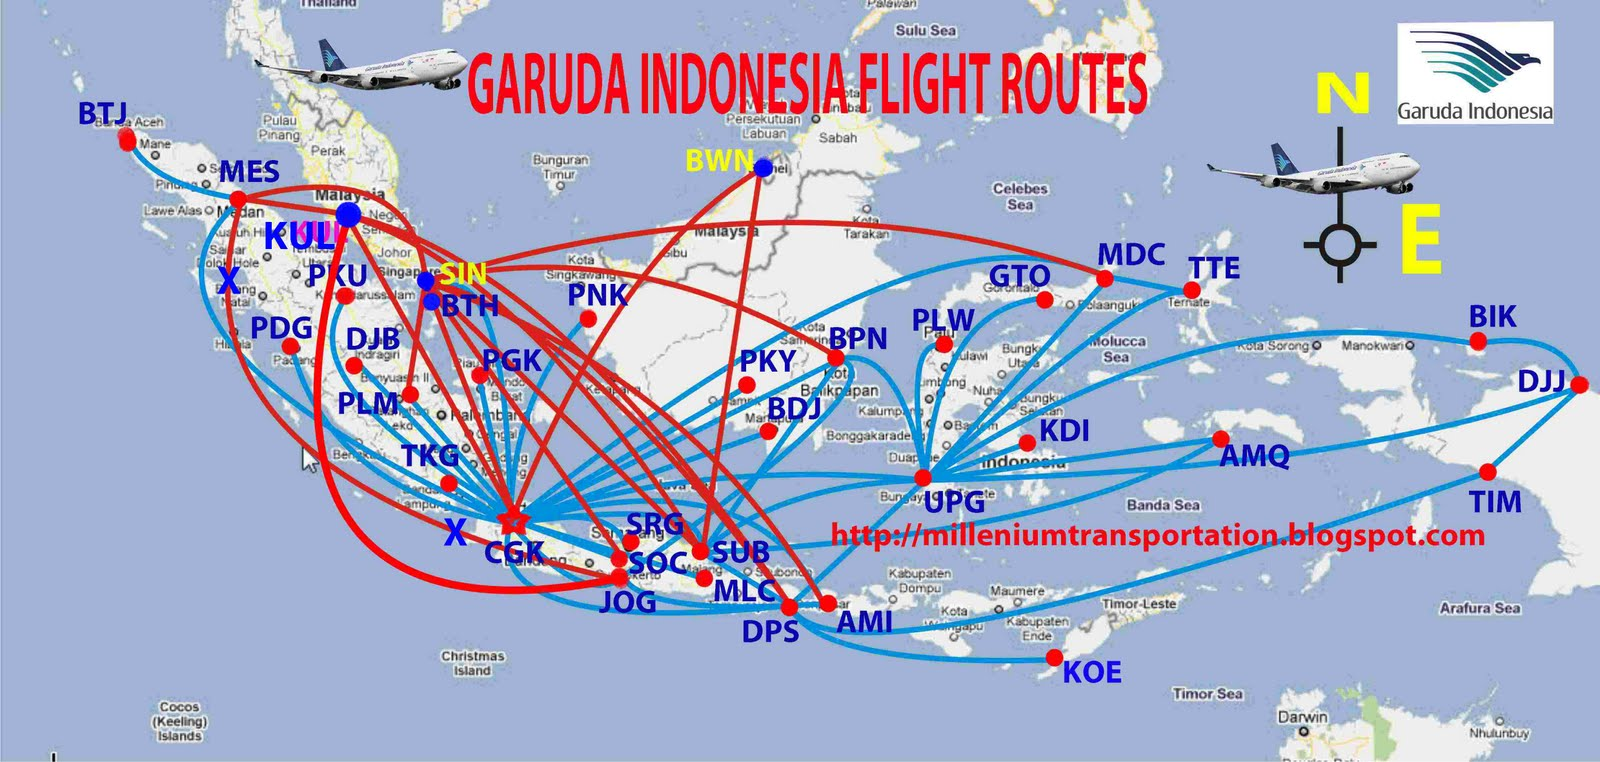 mdc map with Garuda Indonesia Routes Map on Chapter 10 Key 1 31953163 moreover 827597365 as well News additionally 7027853487 likewise Large Blank Europe Template 265366070.